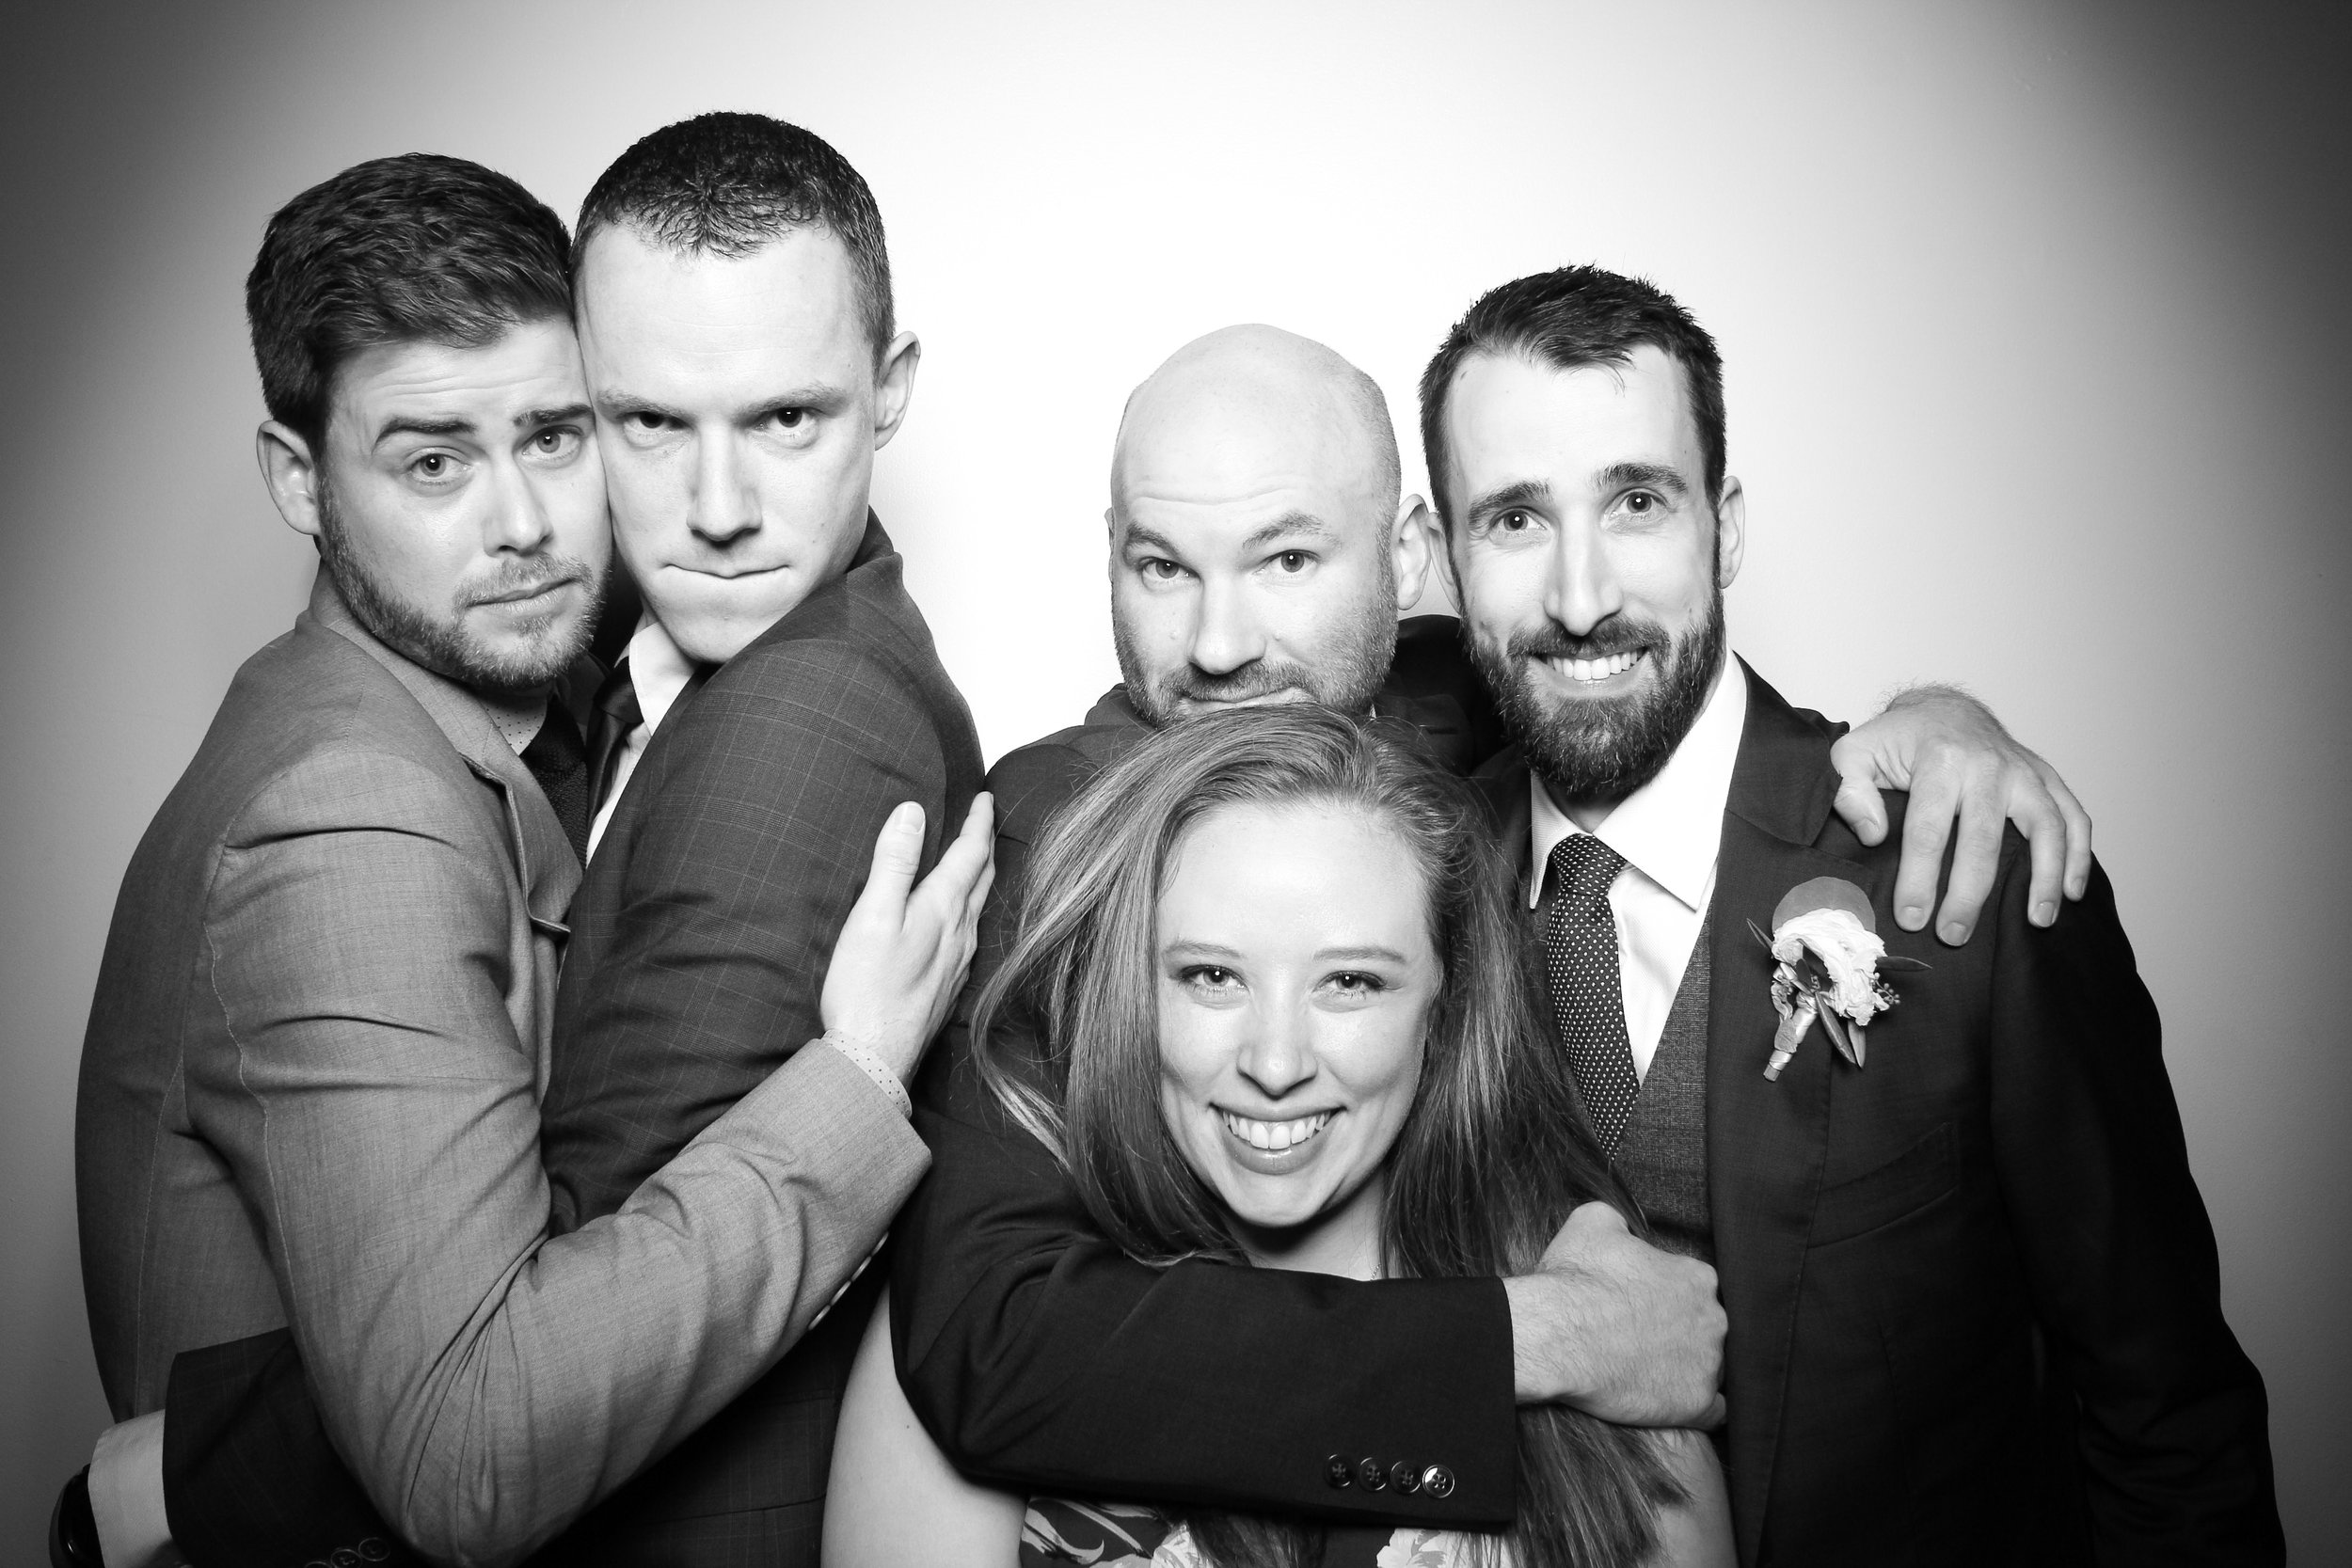 Chicago_Vintage_Wedding_Photobooth_Ravenswood_16.jpg